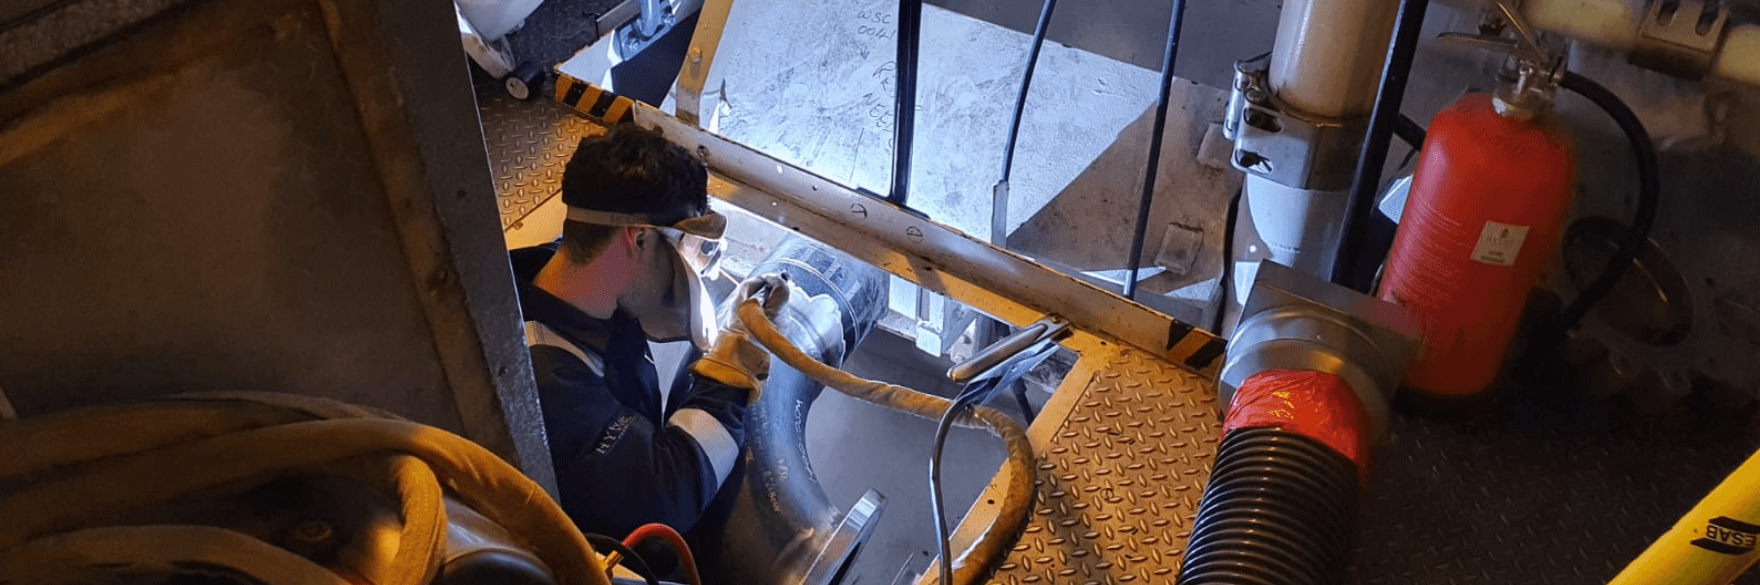 Hythe marine services engineers for royal navy vessels